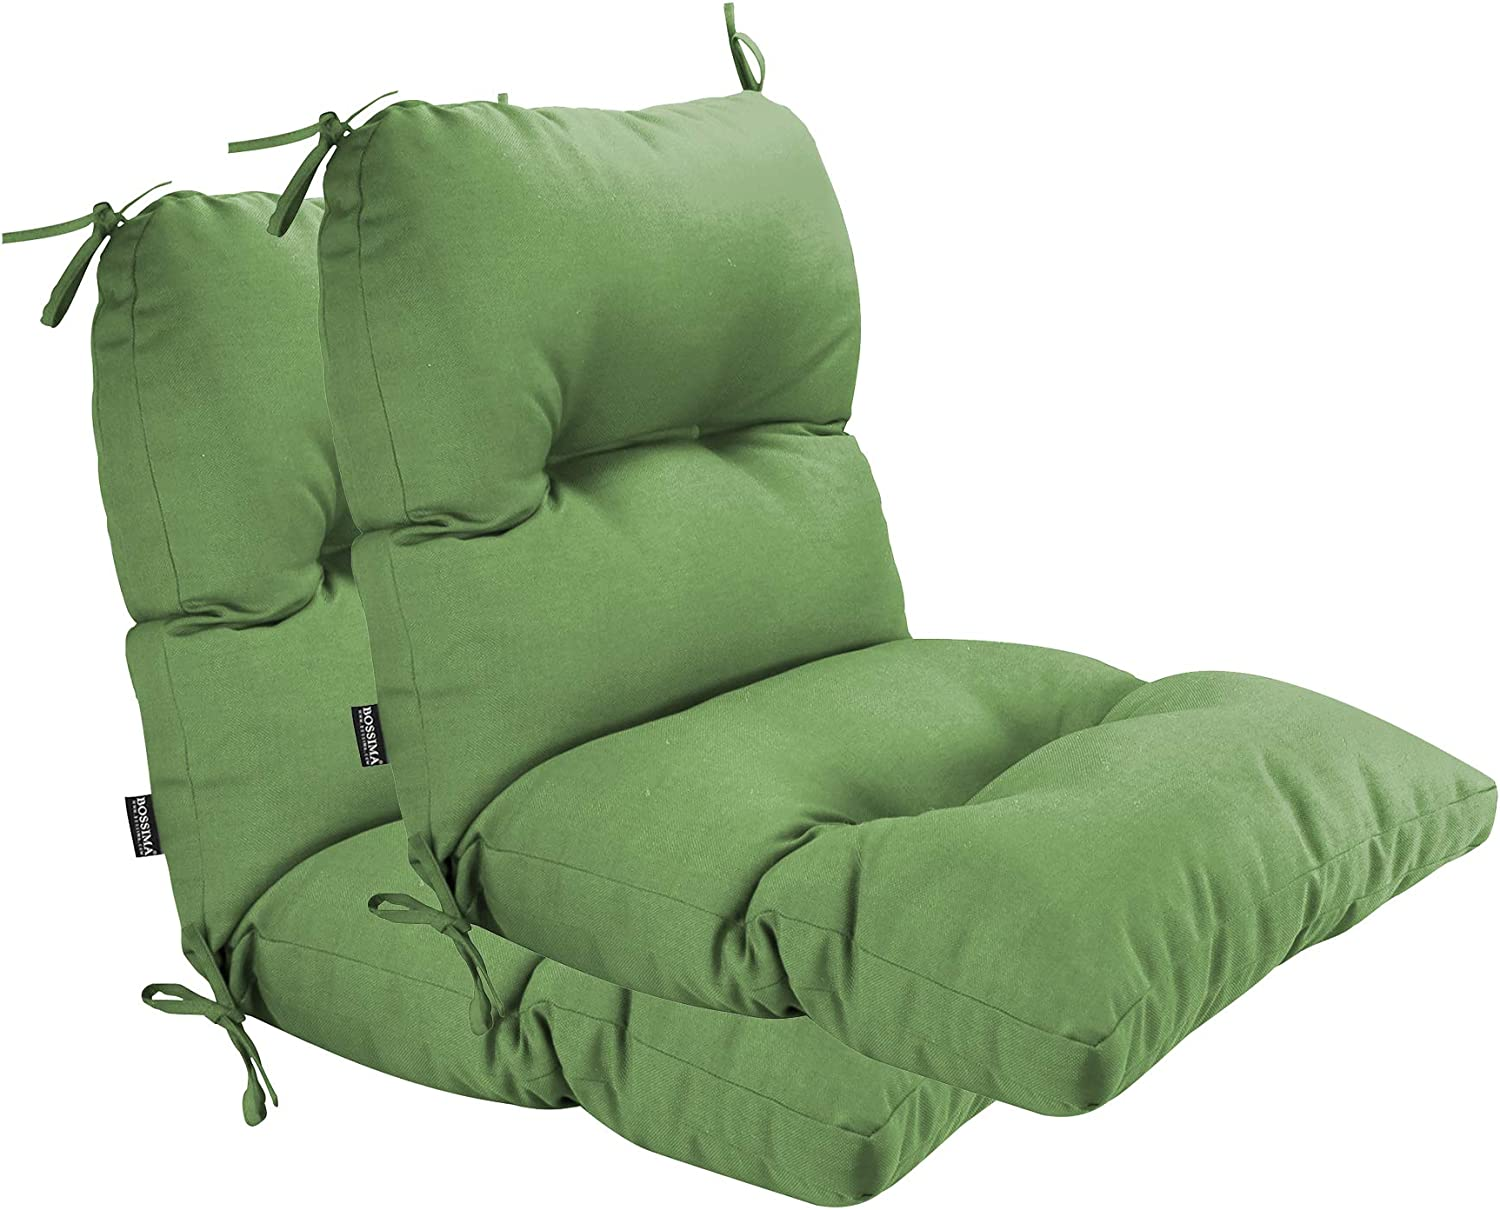 BOSSIMA Outdoor Indoor High Back Chair Tufted Cushions Comfort Replacement Patio Seating Cushions Set of 2 Deep Green